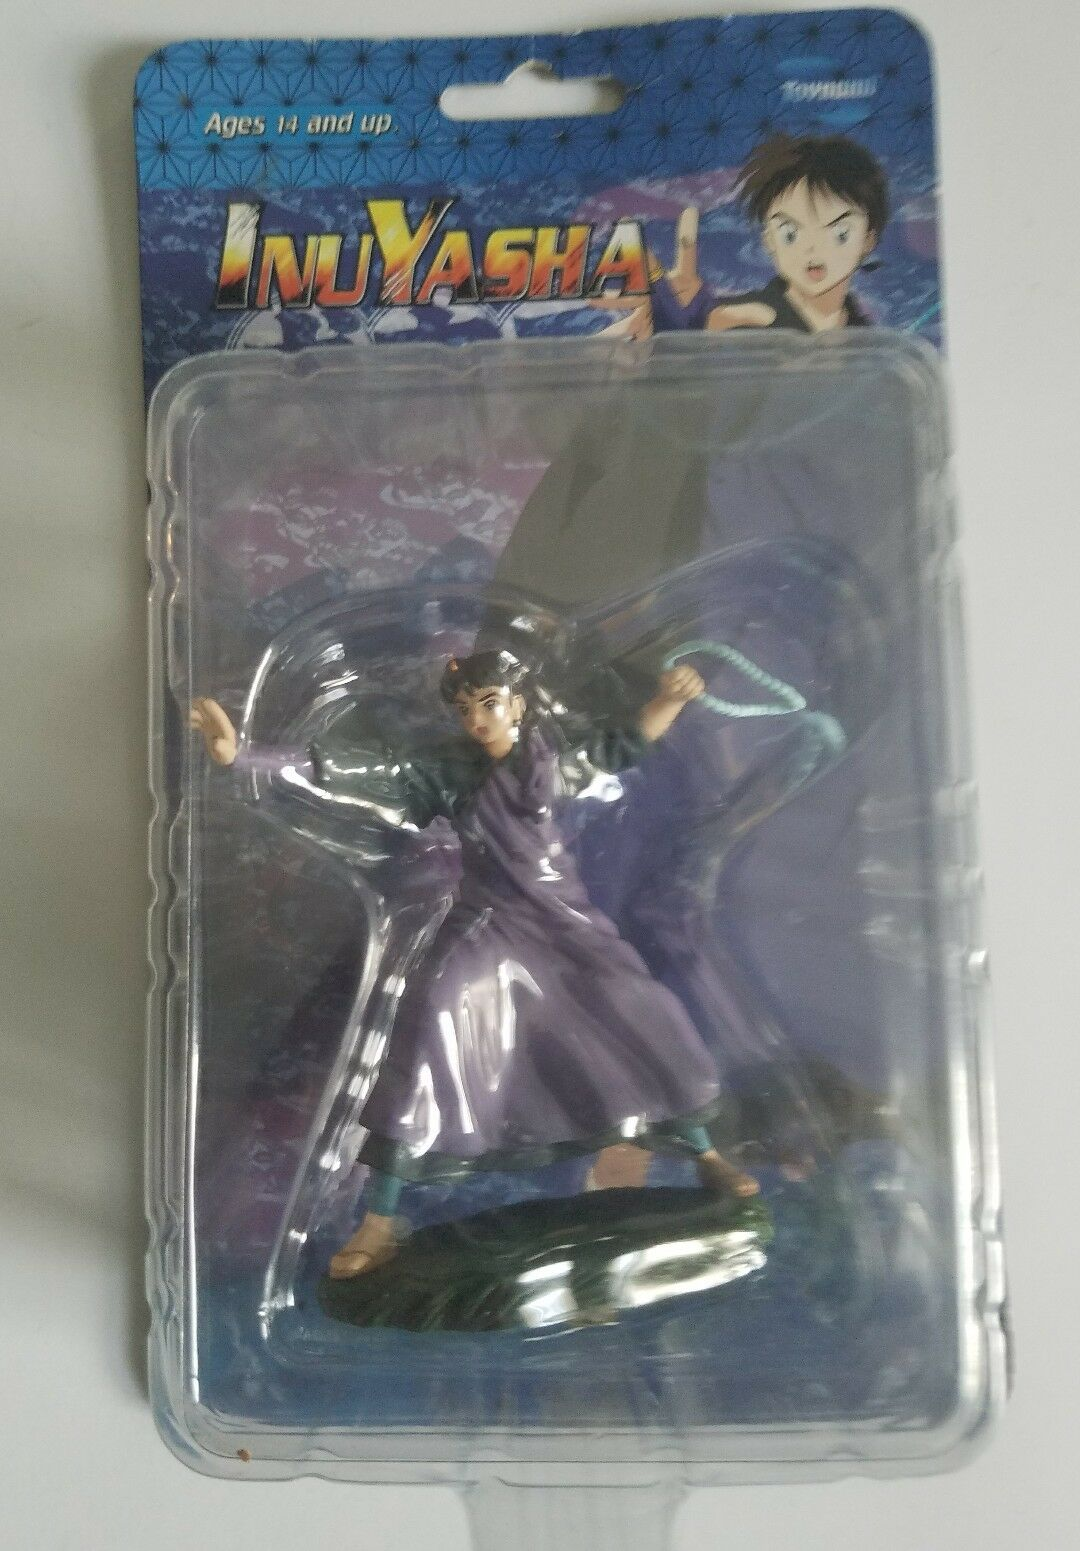 KAGOME INUYASHA MINI ACTION FIGURINE By Brand Toynami Brand By New (A3) c2080d